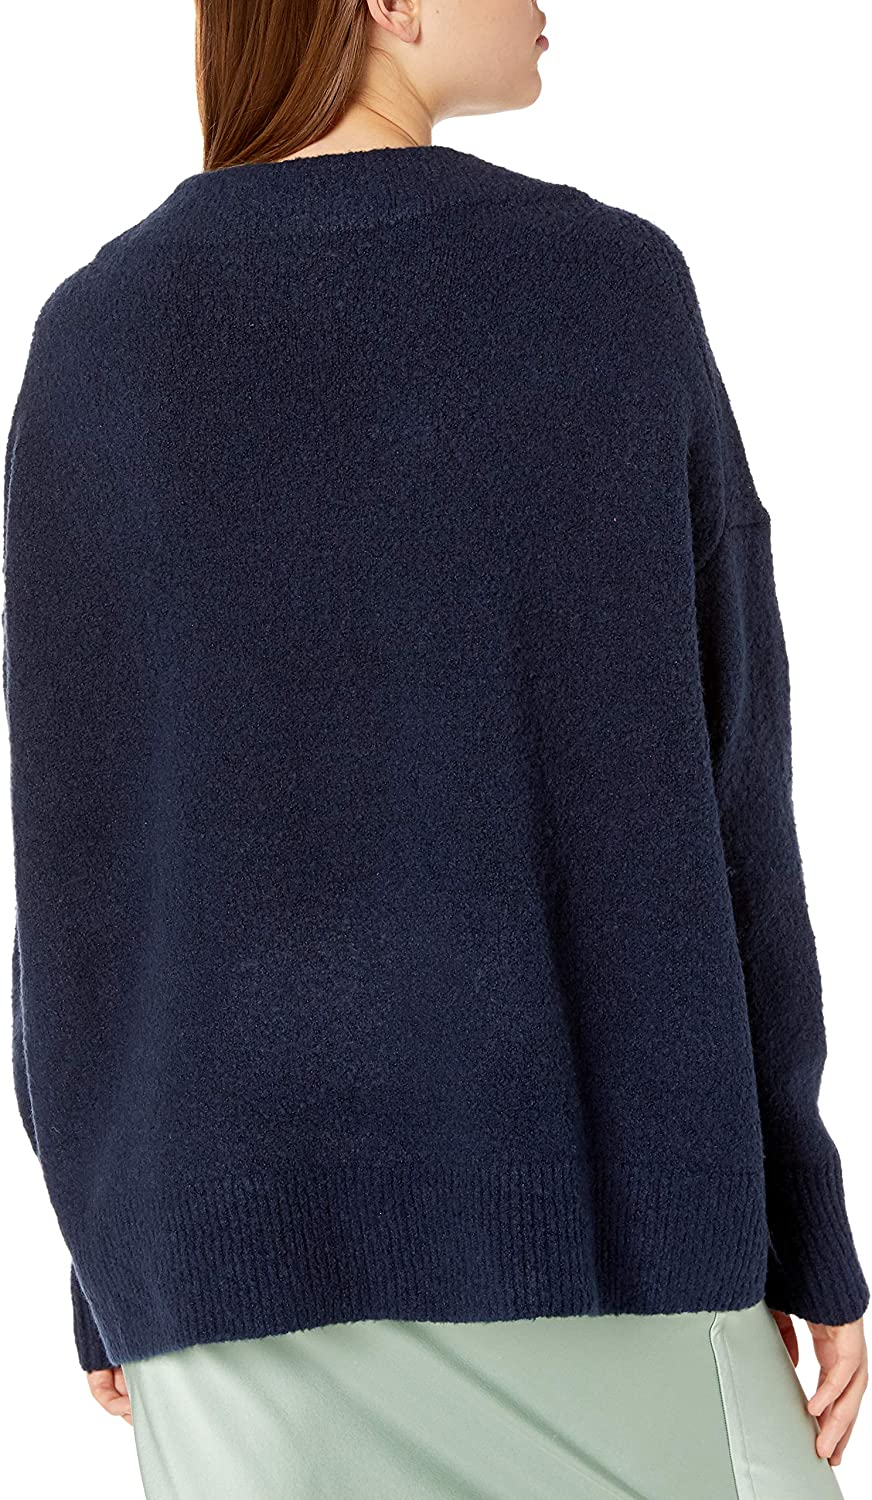 Cable Stitch Womens Mock Neck Cozy Sweater